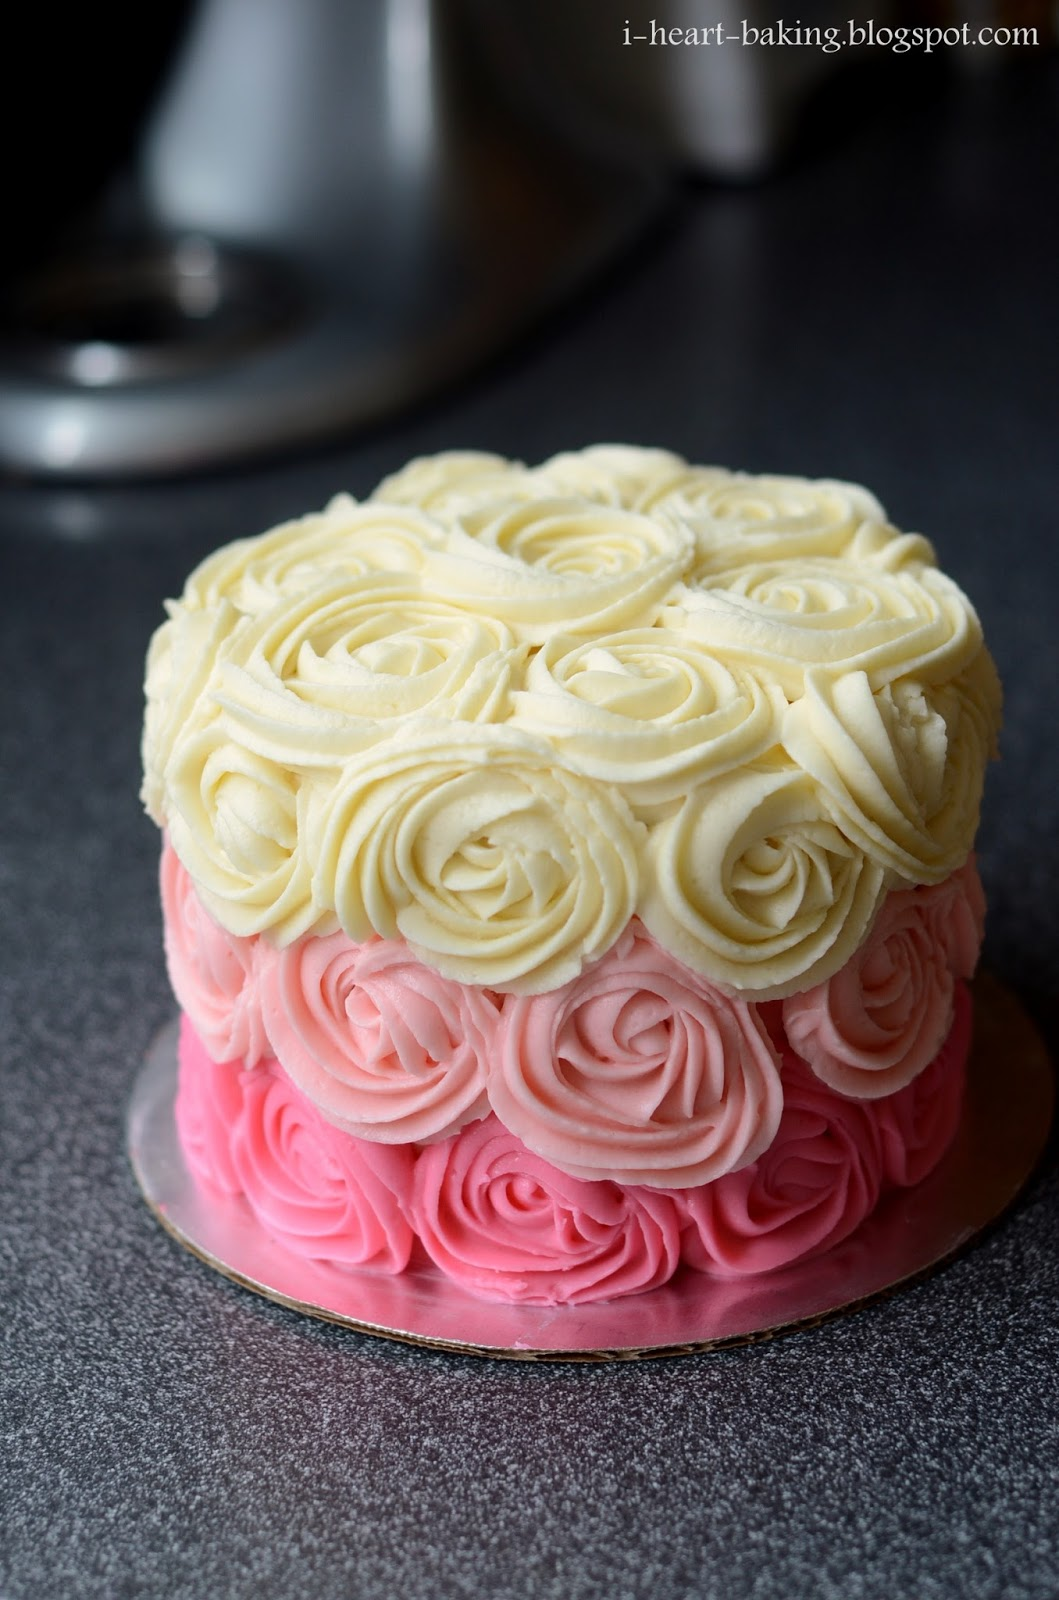 Cake Images With Roses : i heart baking!: pink ombre rose cake